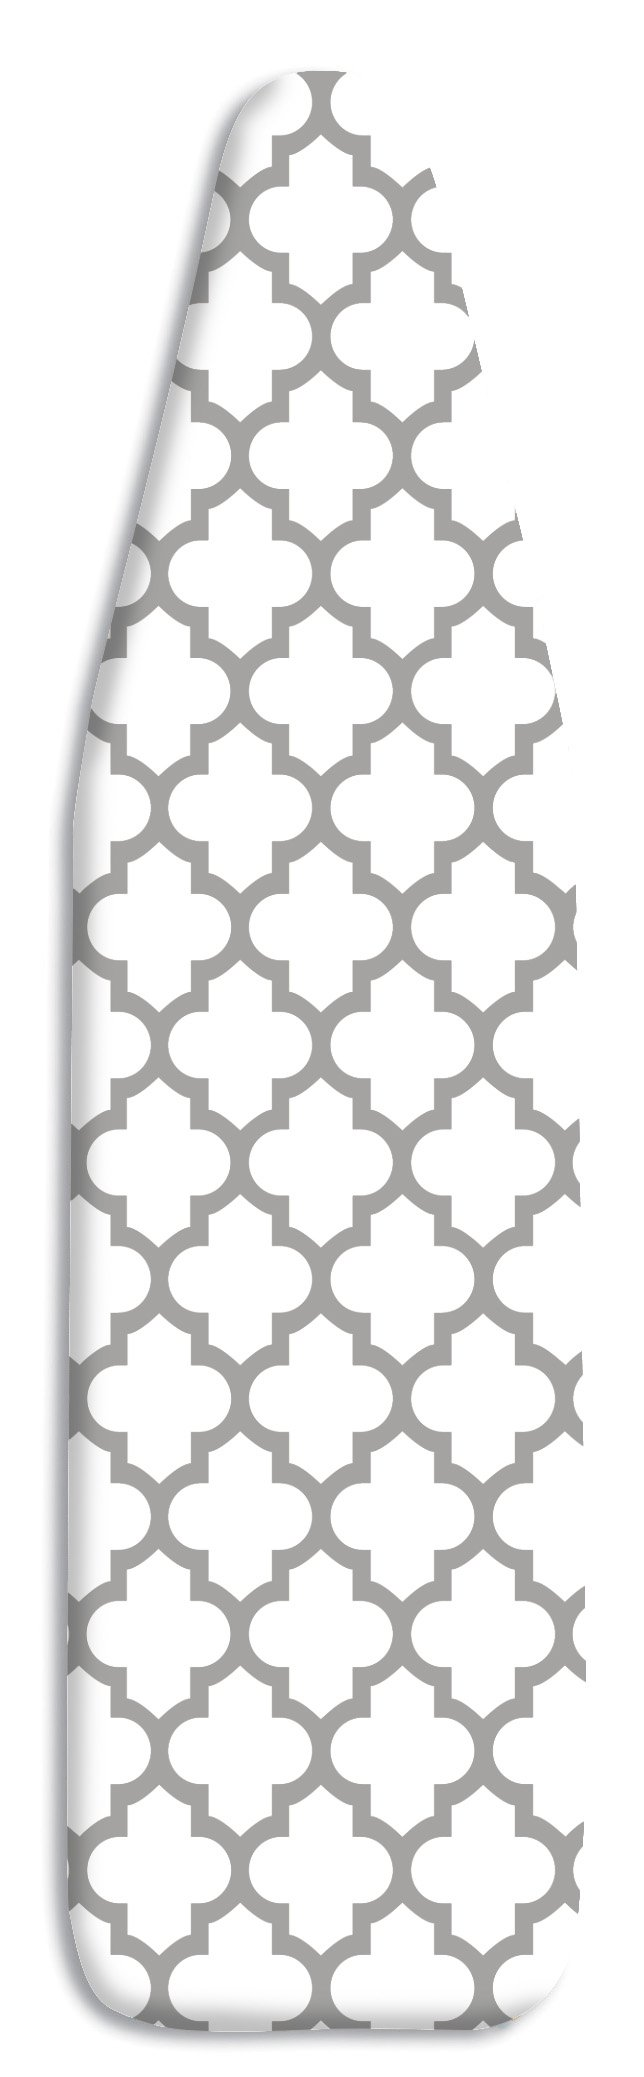 Whitmor Deluxe Ironing Board Cover and Pad - Medallion Gray by Whitmor